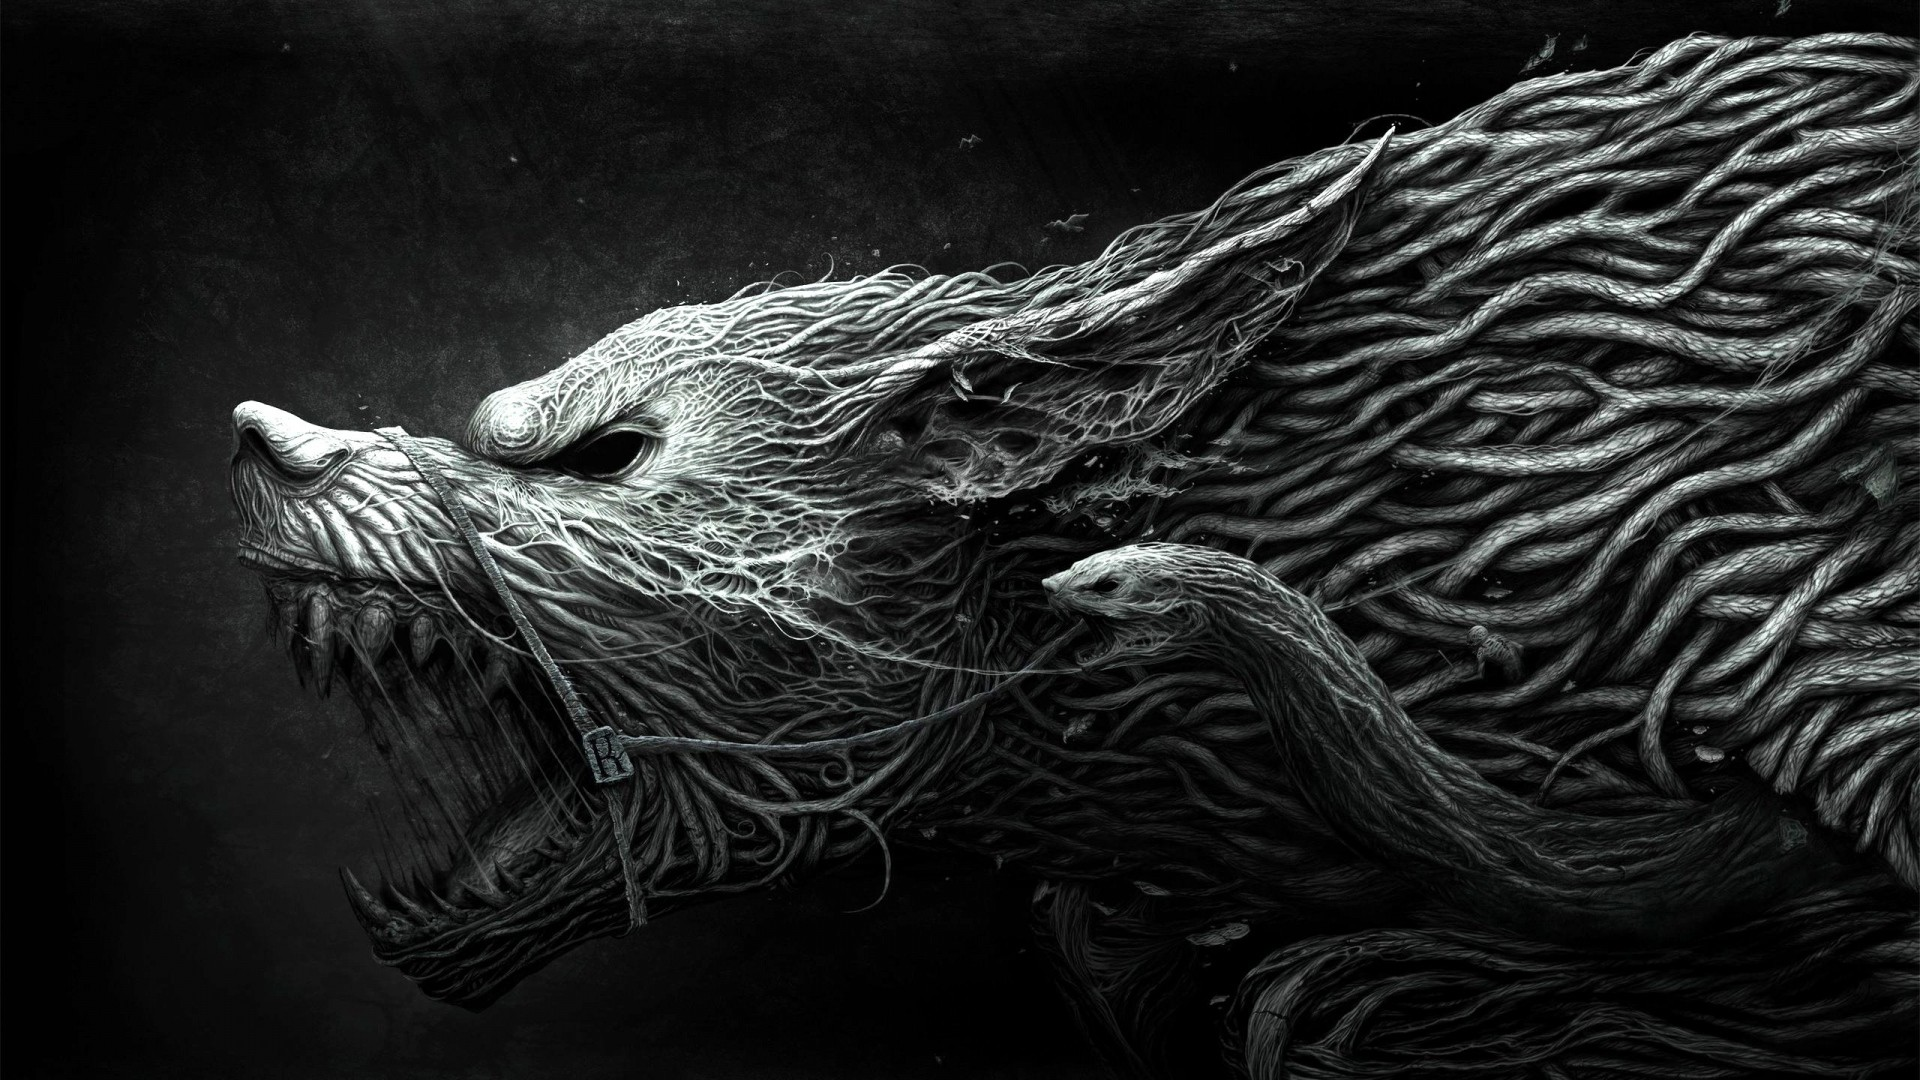 Iphone Wallpapers Hd Zedge Wolf Wallpaper For Iphone 72 Images